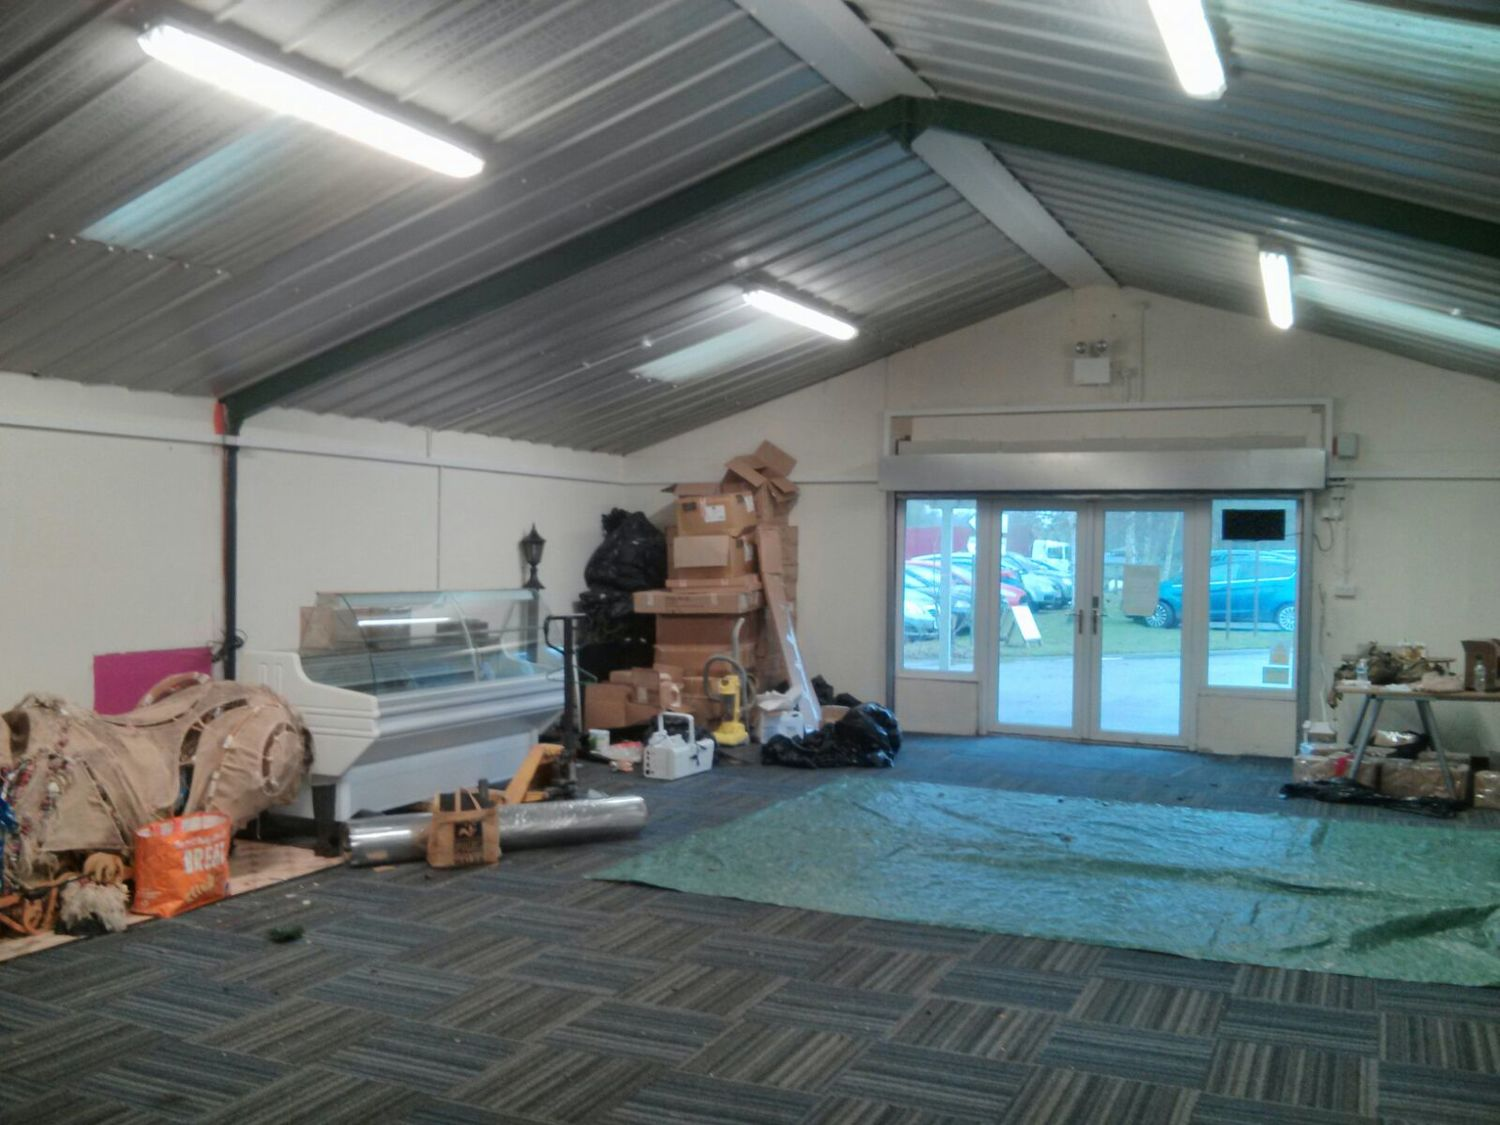 Construction of Ginger&Browns pet shop in Northwich, near Chester and Frodsham, Cheshire. Specialising in dogs, cats and wildlife.